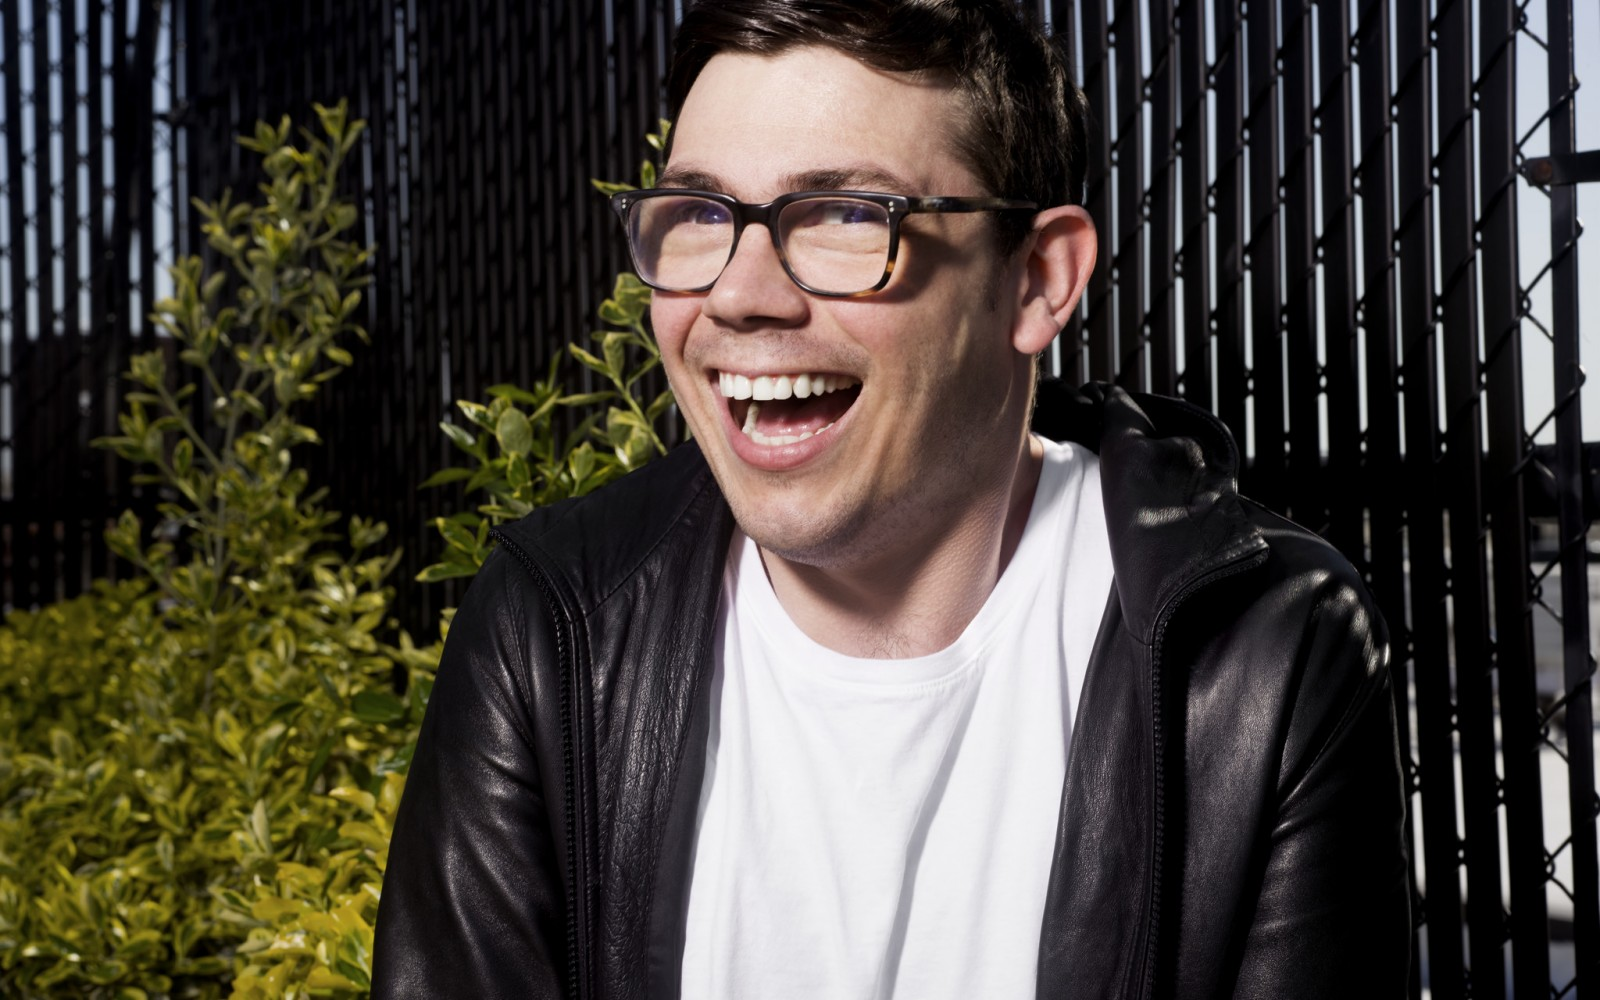 40 Shameless Ryan O'Connell Quotes That Will Guide You Through Your 20s